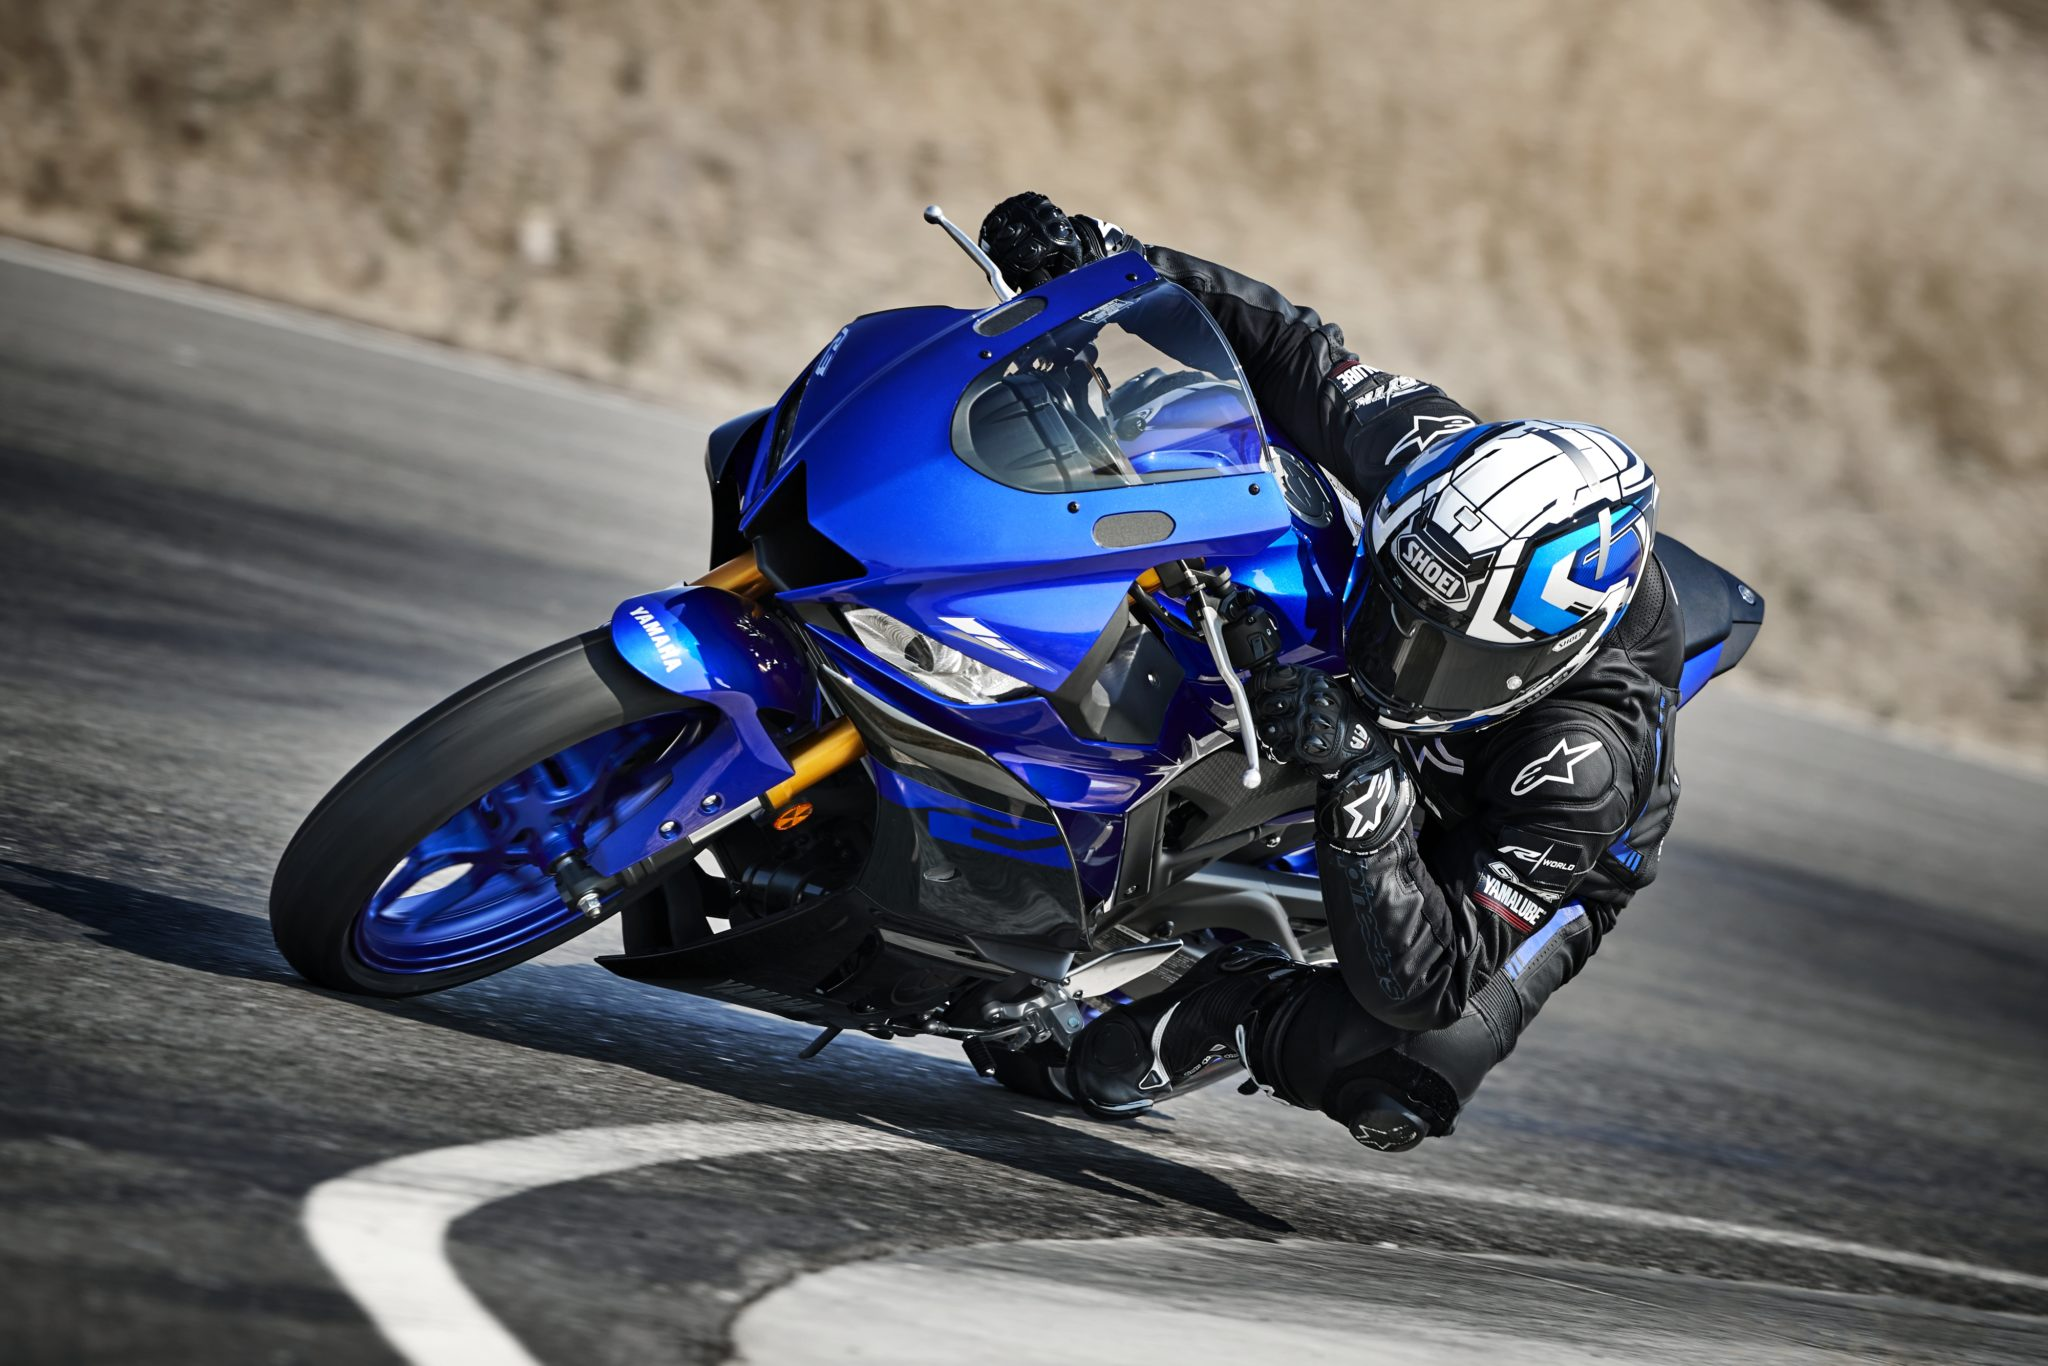 New Yamaha YZF-R3 ready to hit the track in 2019